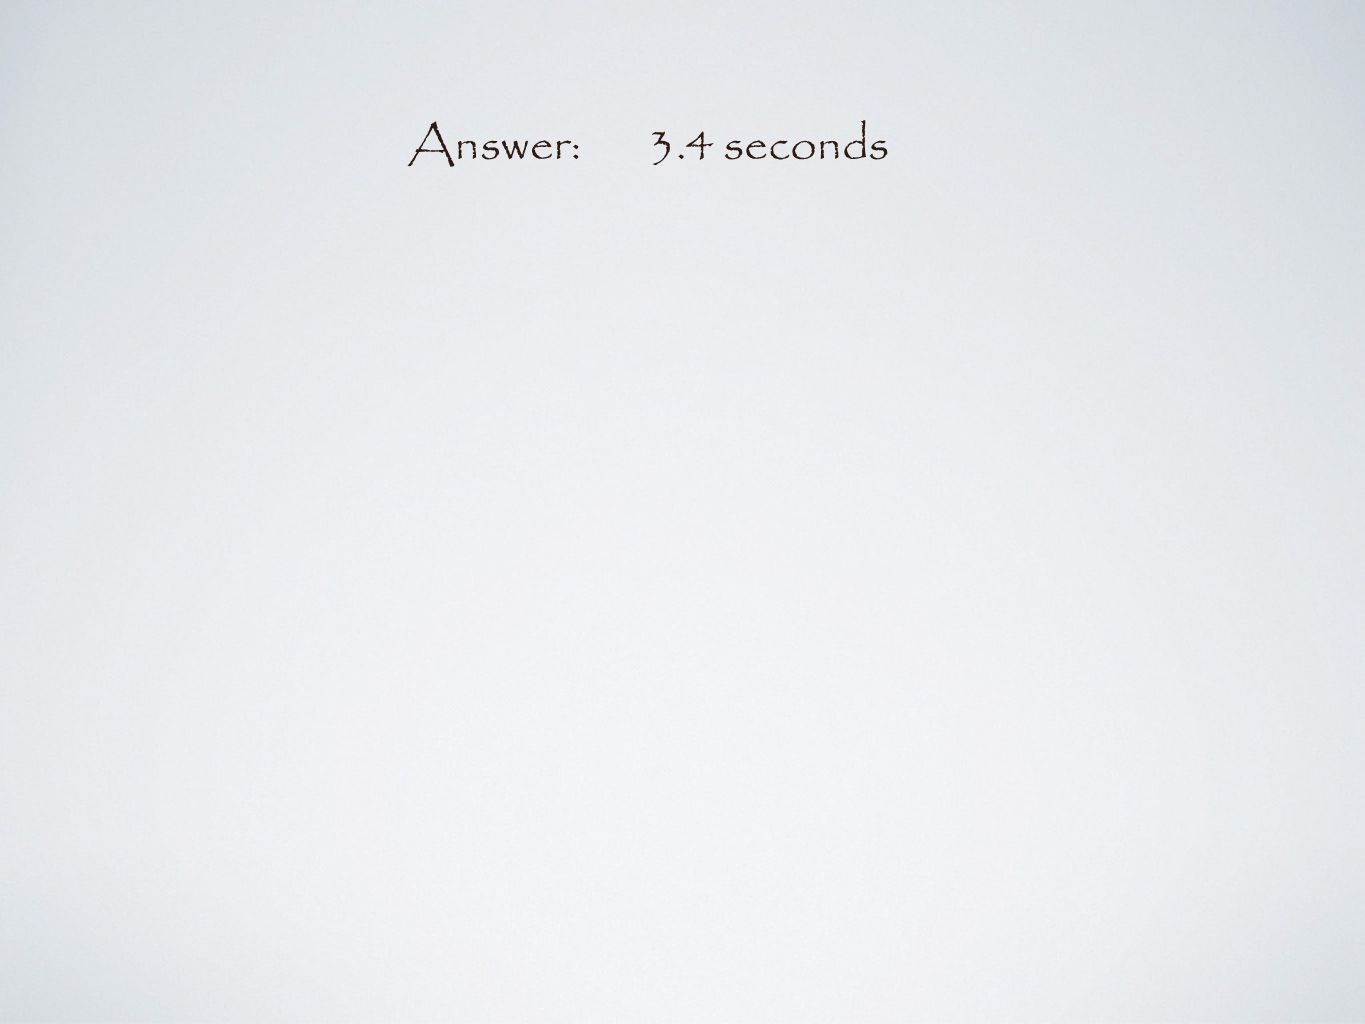 Answer:3.4 seconds